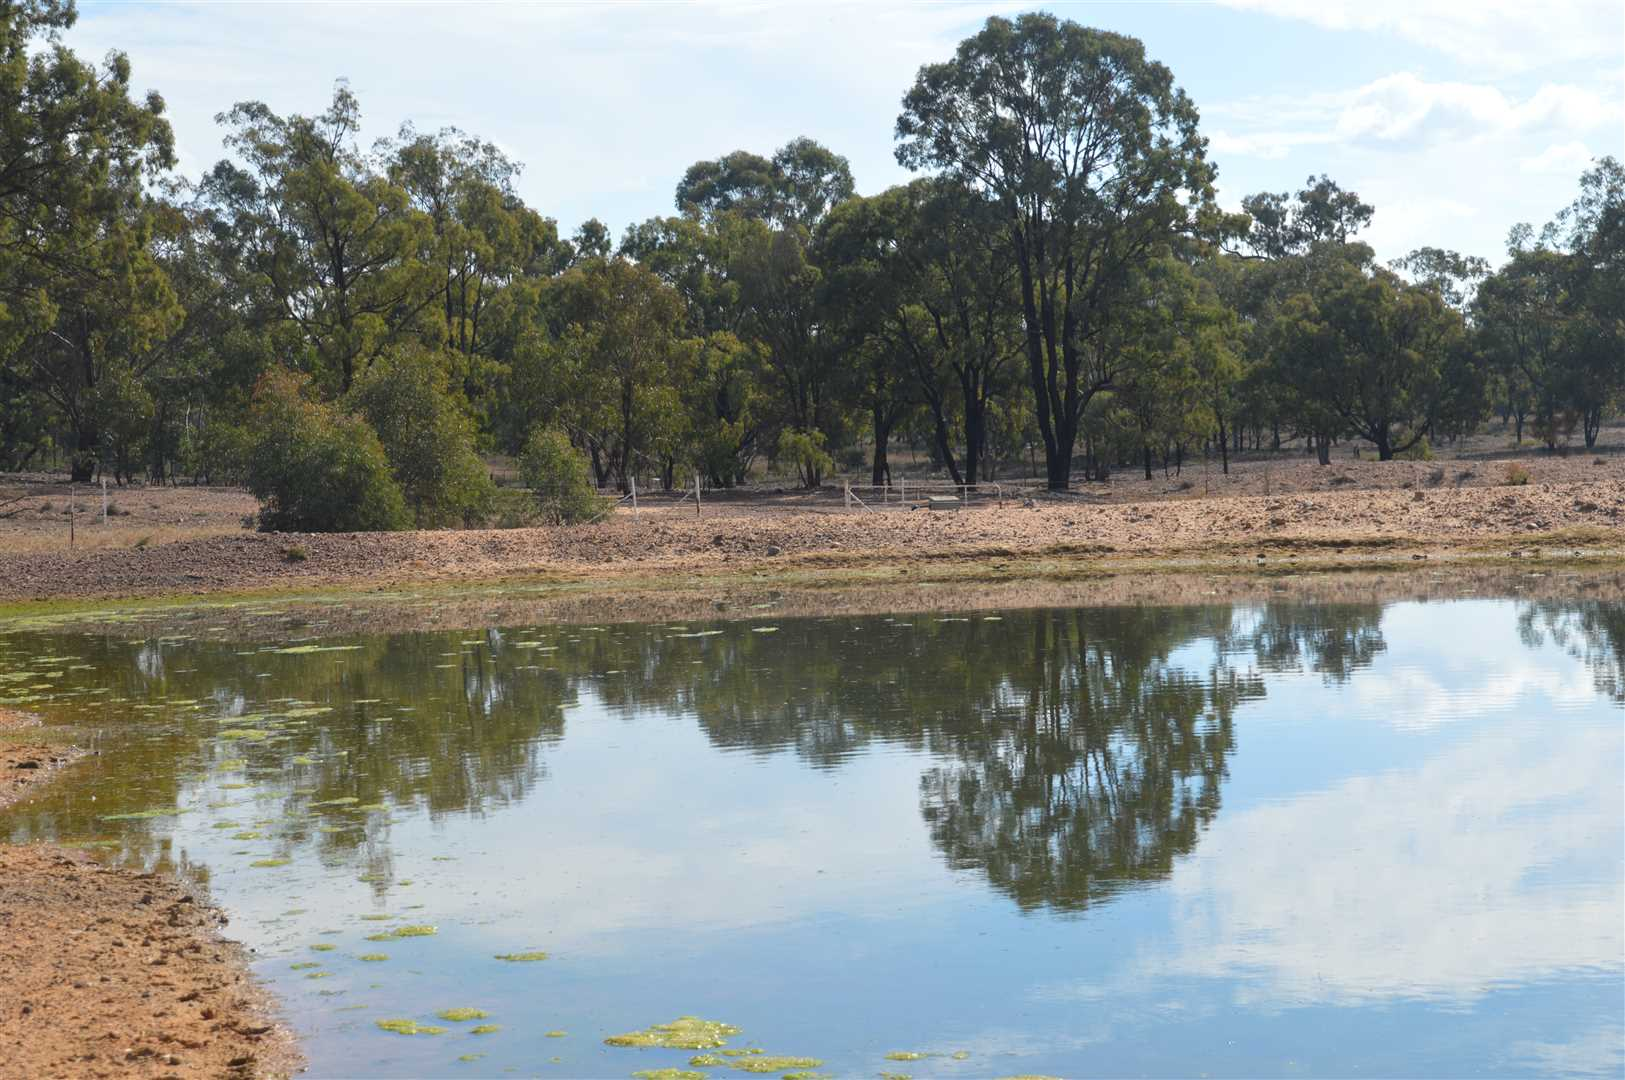 2 dams on the property supply water to gardens and stock